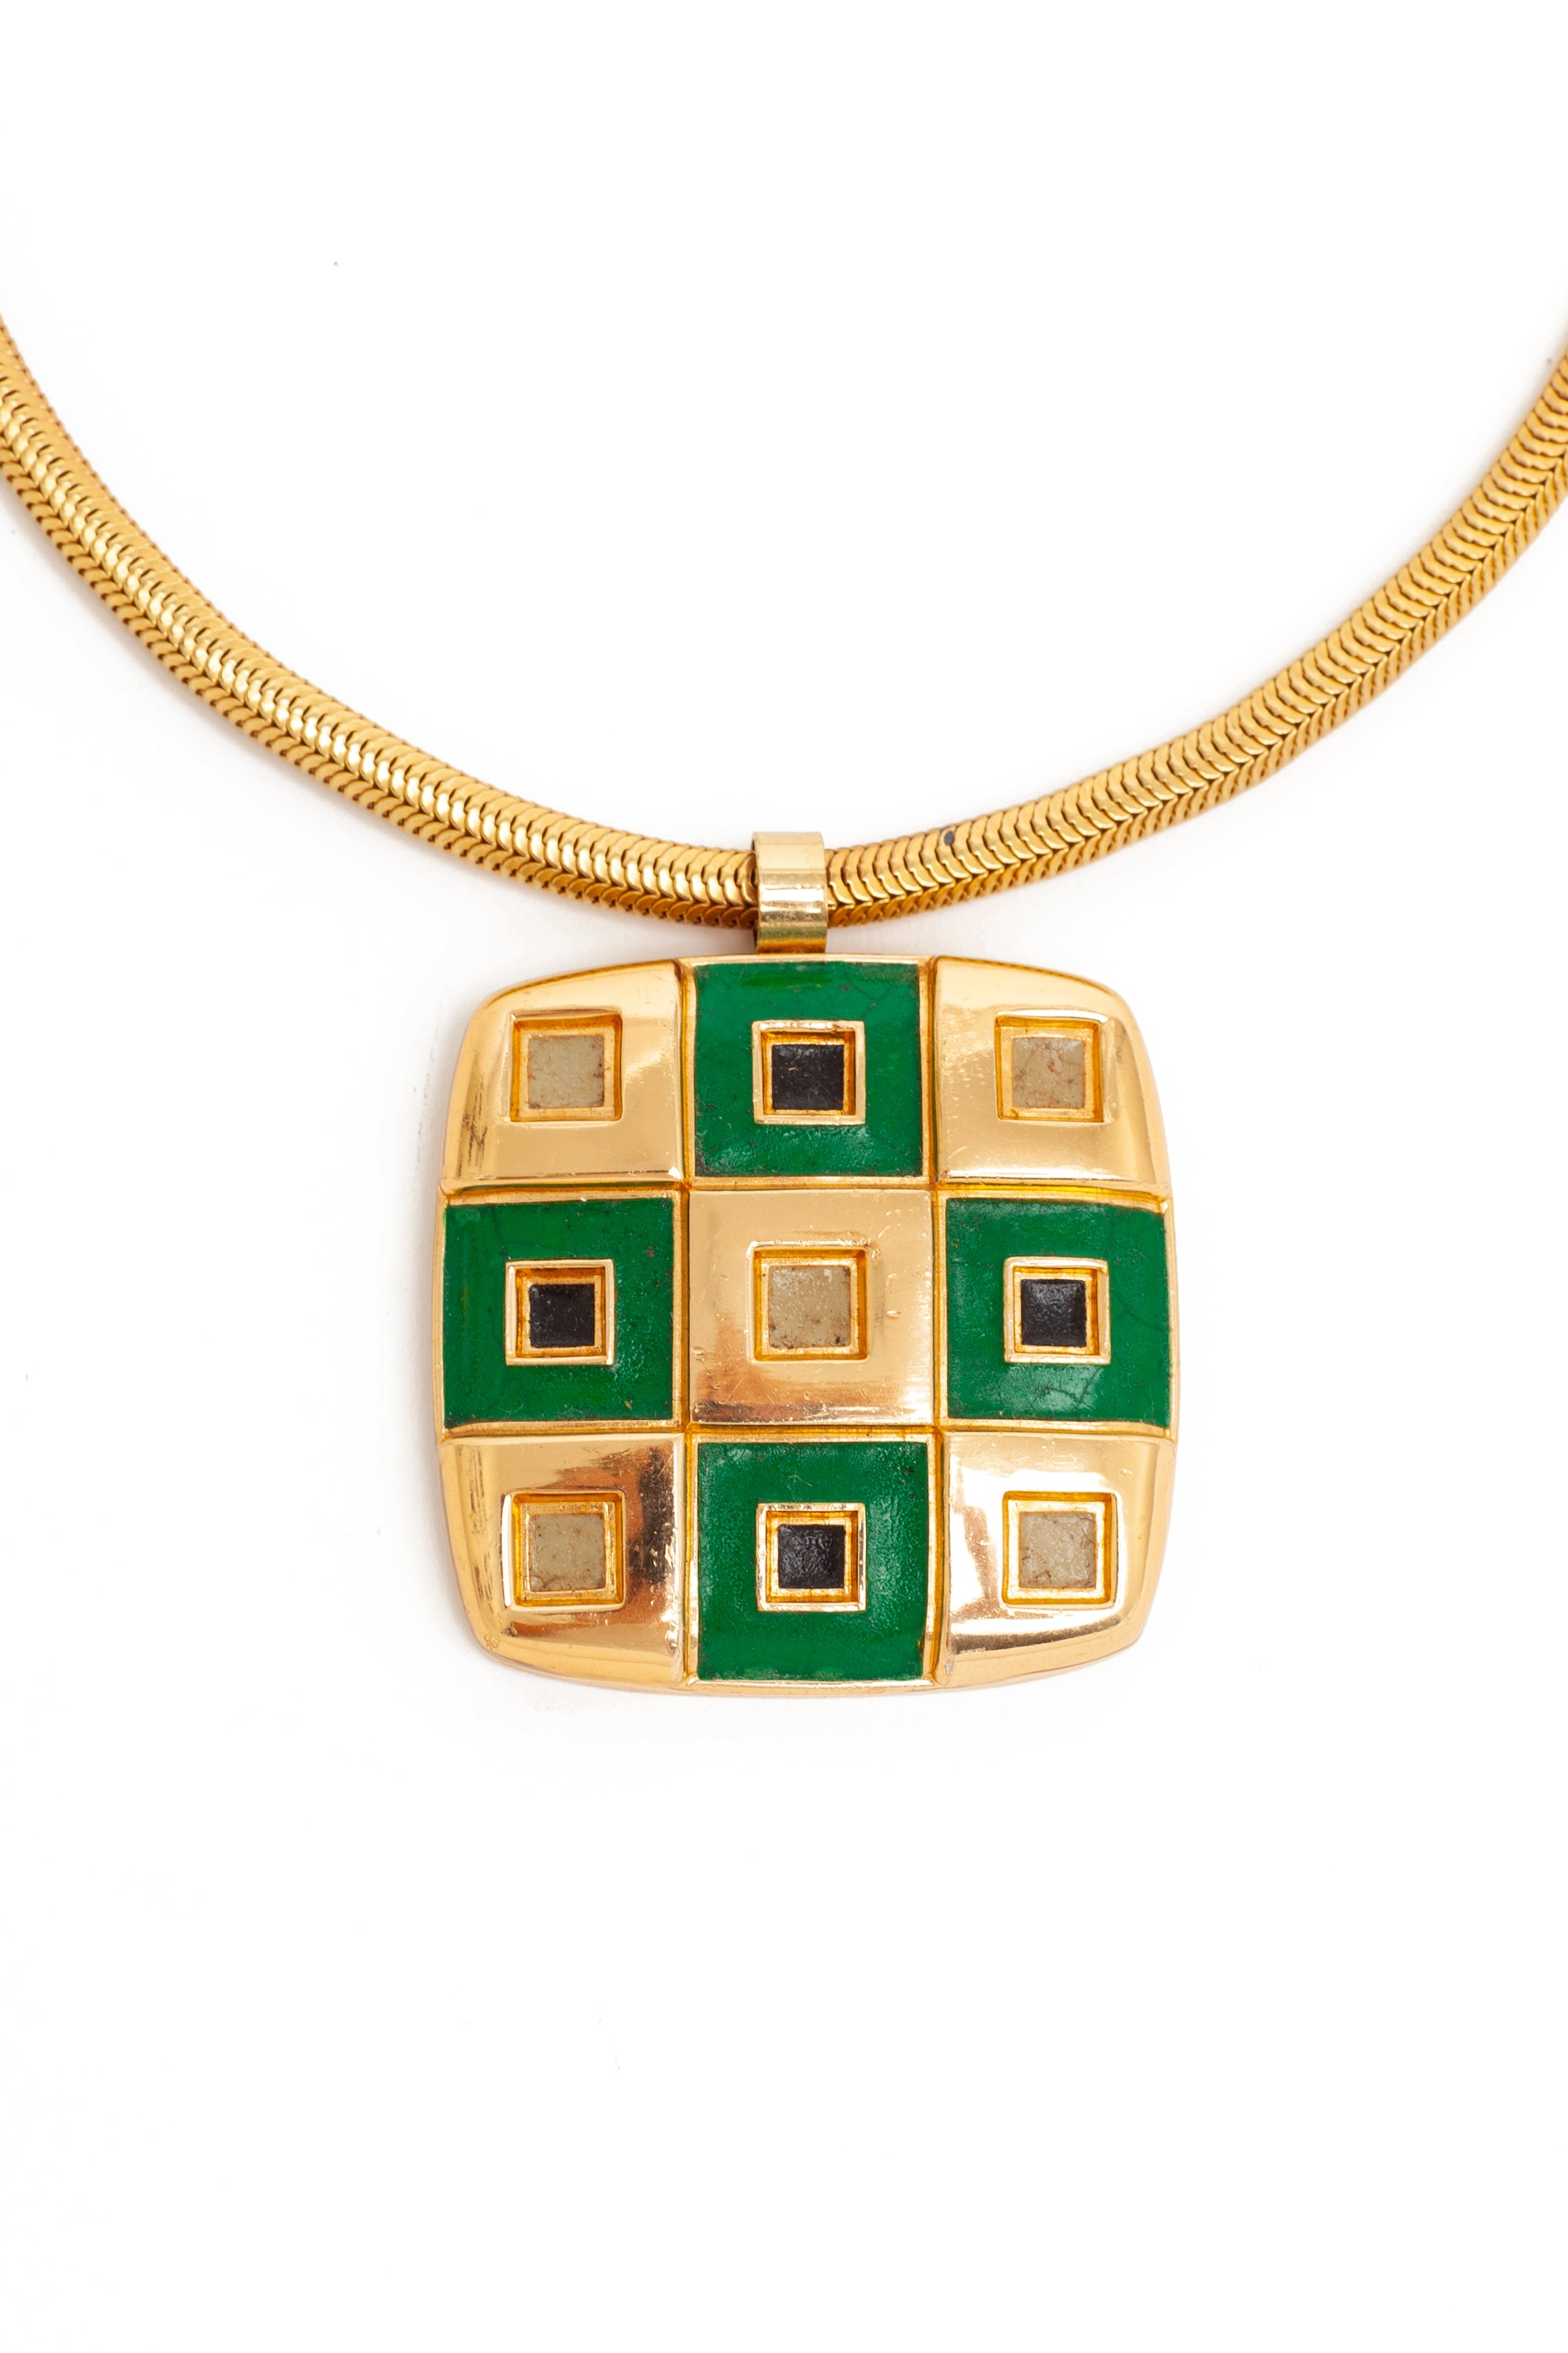 Lanvin <br> 1970's oversized gold & enamel checkerboard pendant necklace